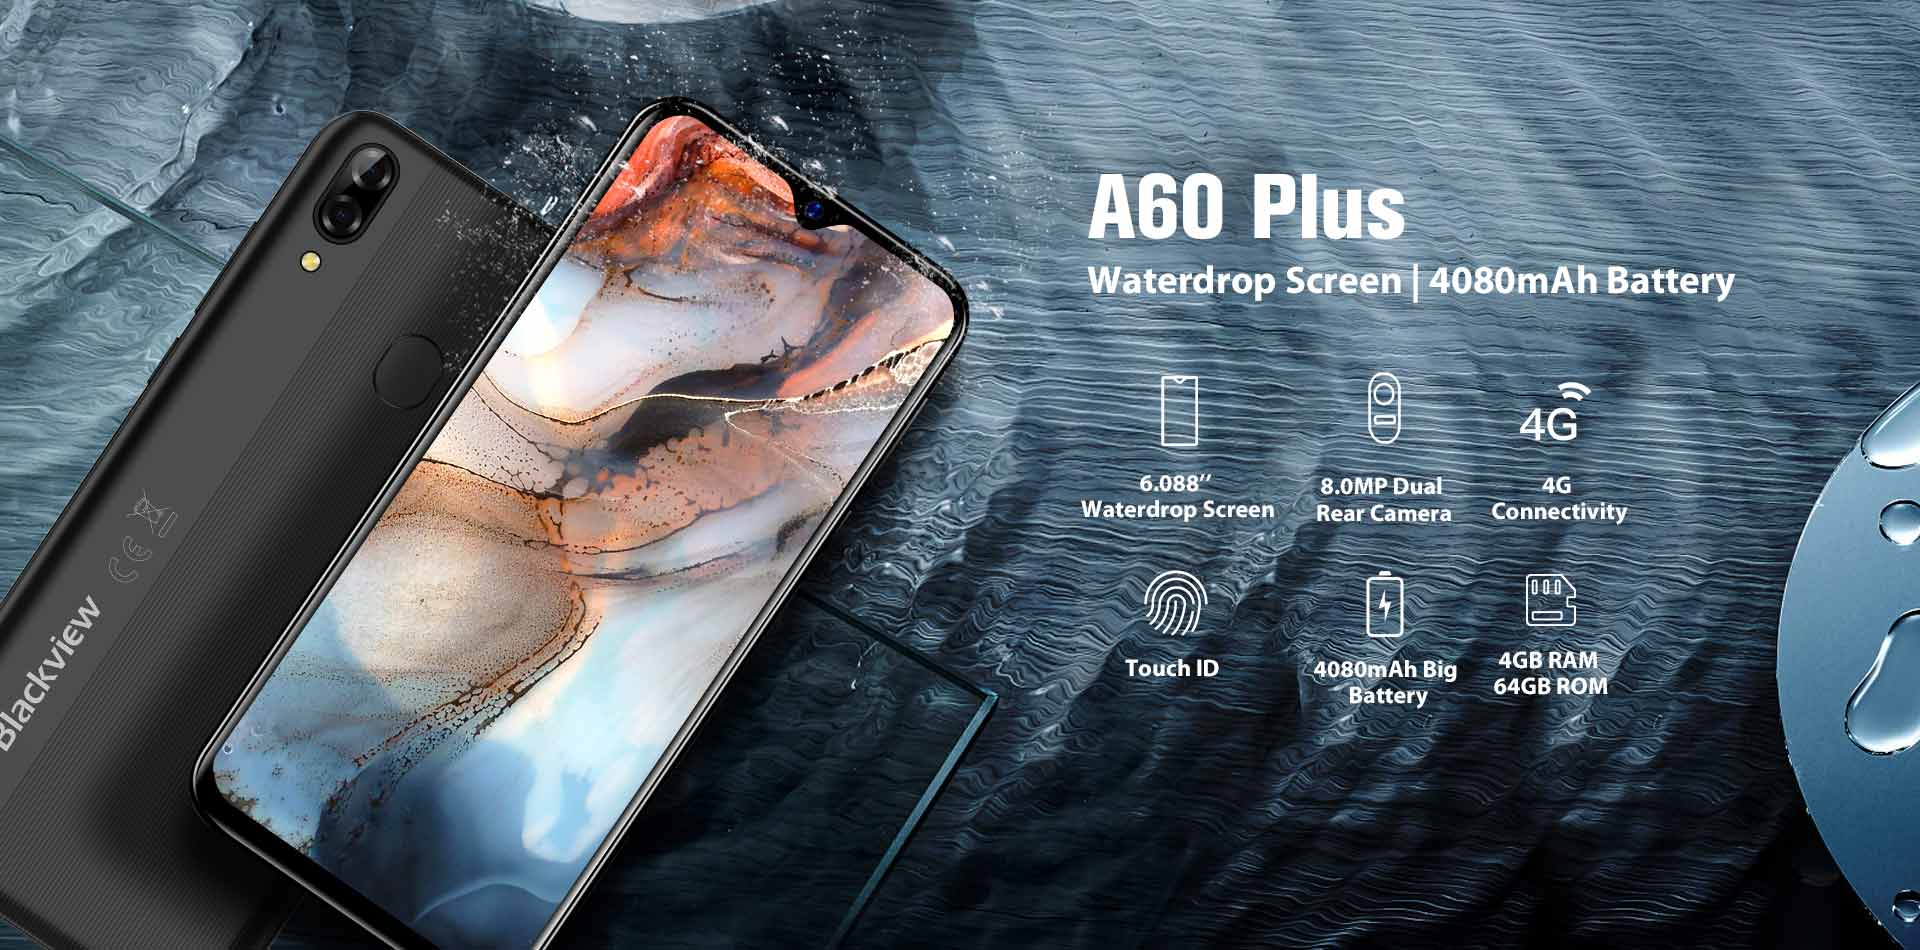 Blackview A60 Plus specs